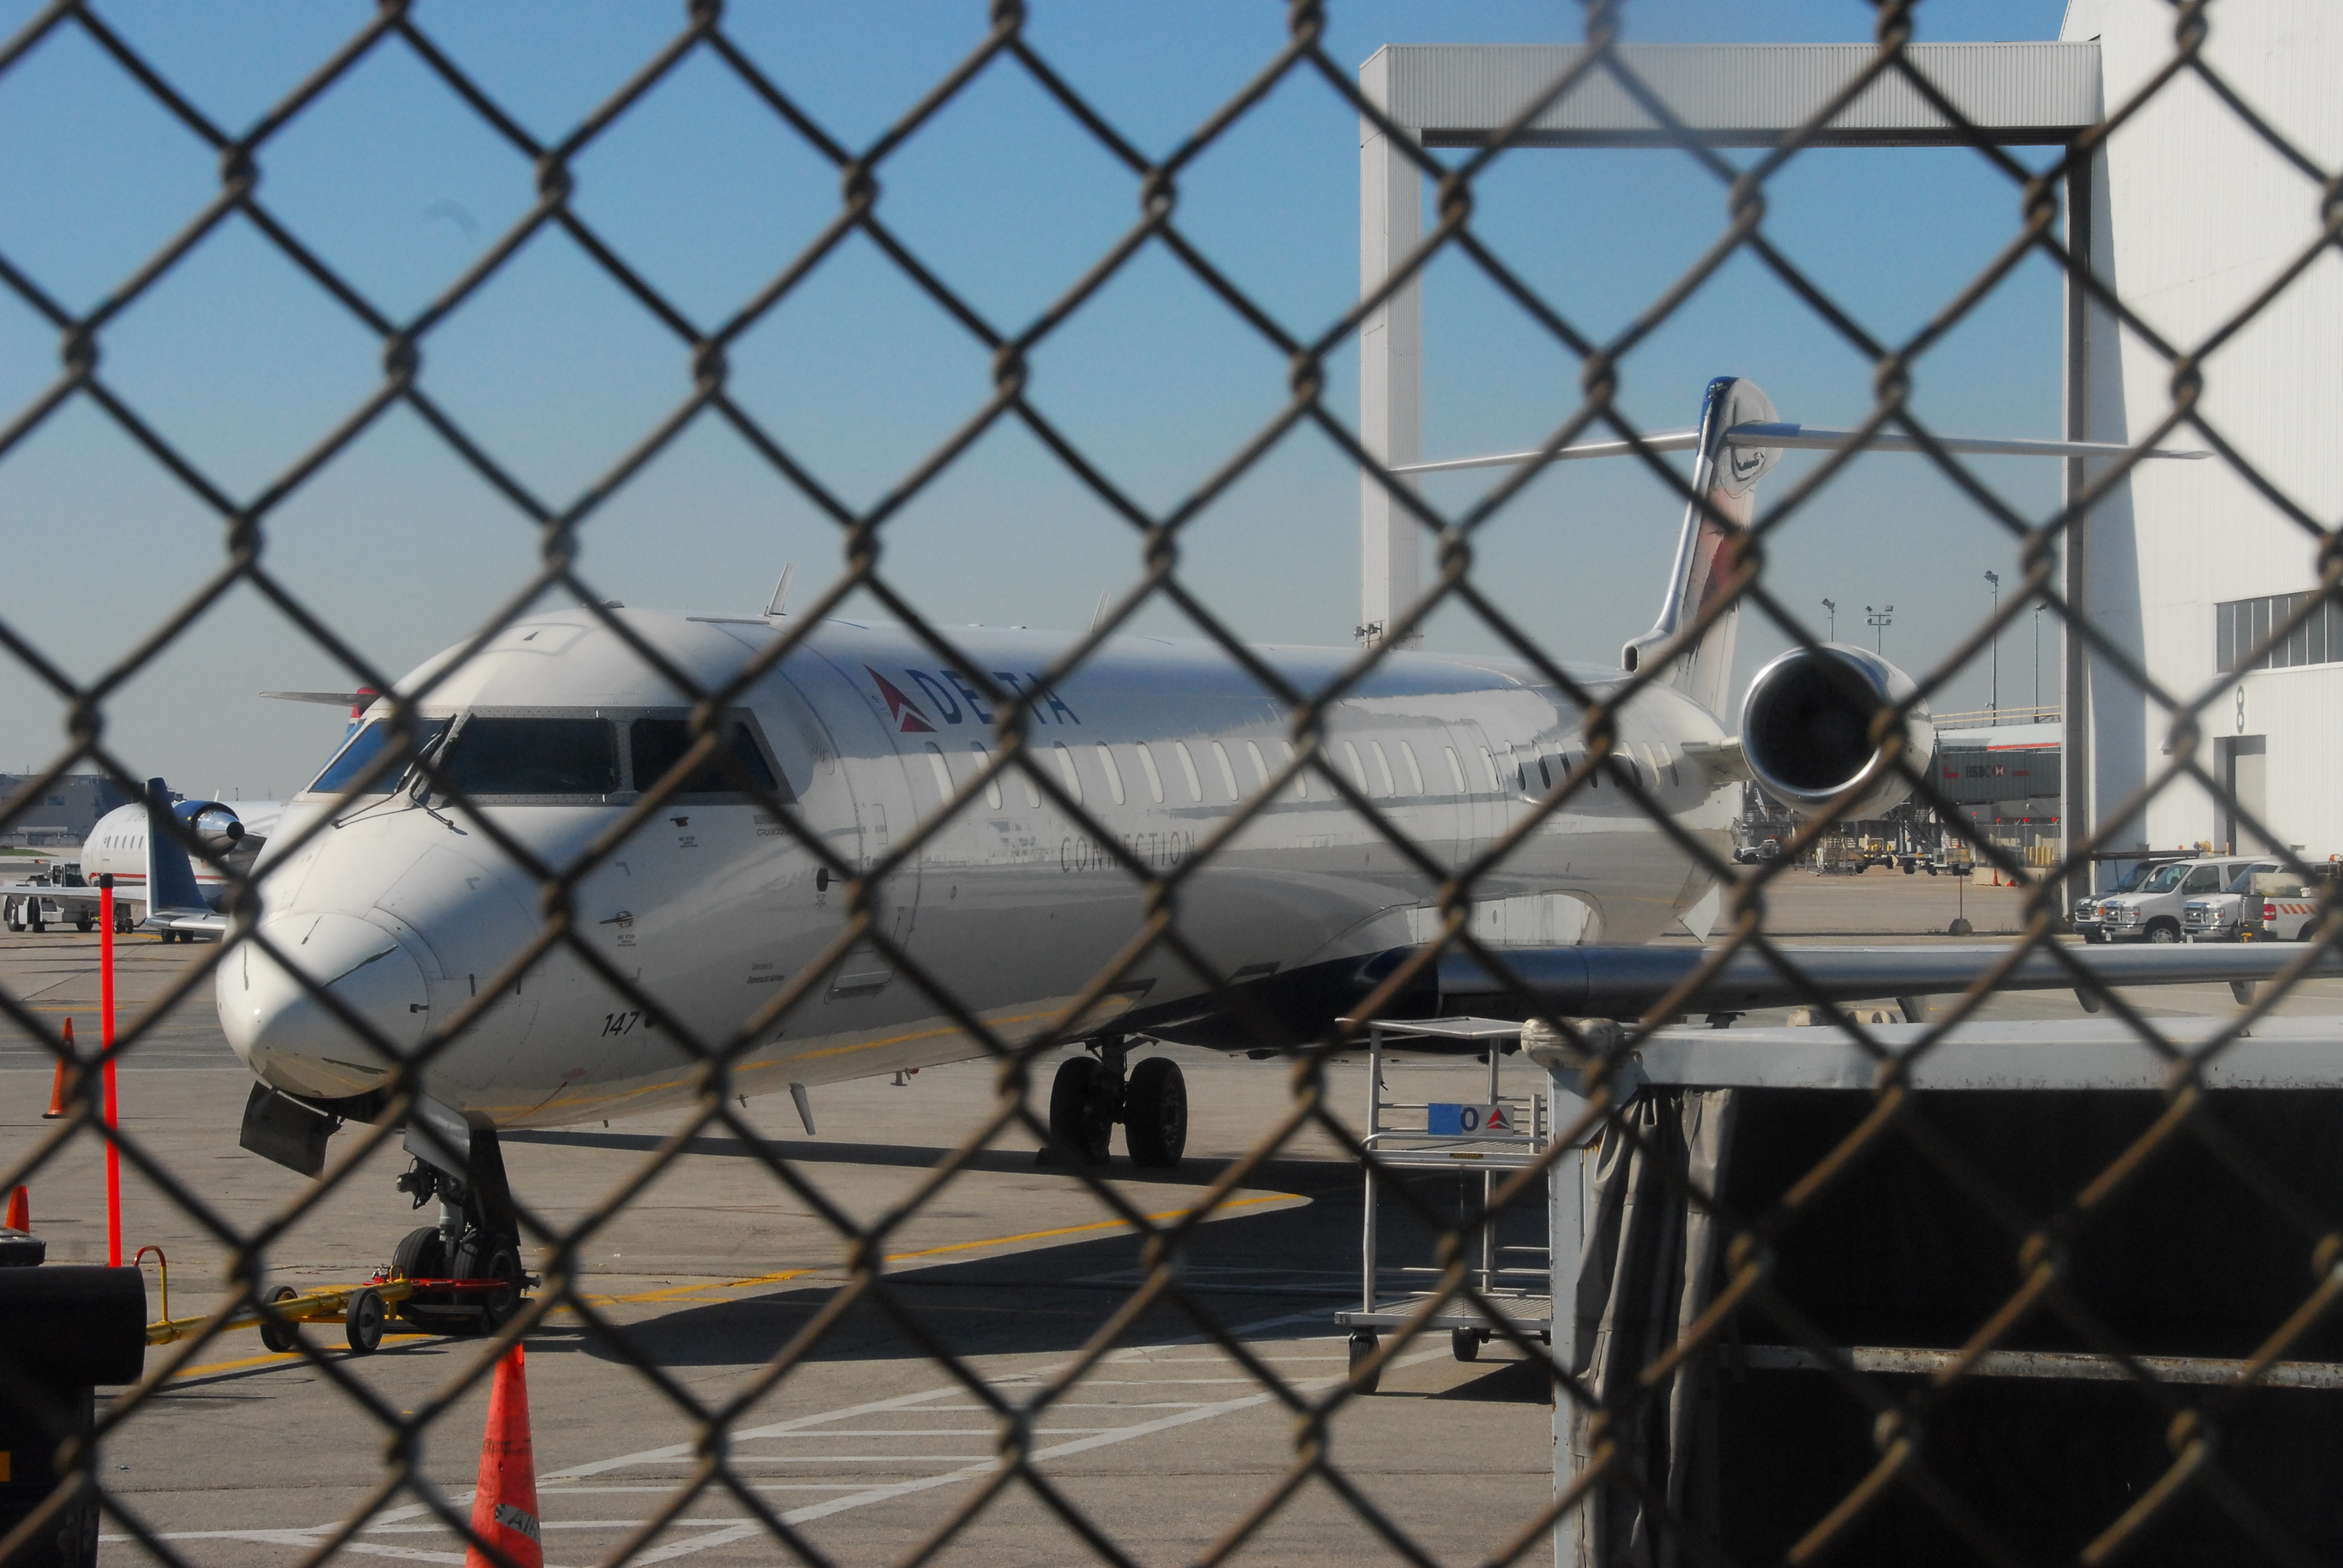 File:Delta Connection (Pinnacle Airlines) Bombardier CRJ-900 (CL-600 ...